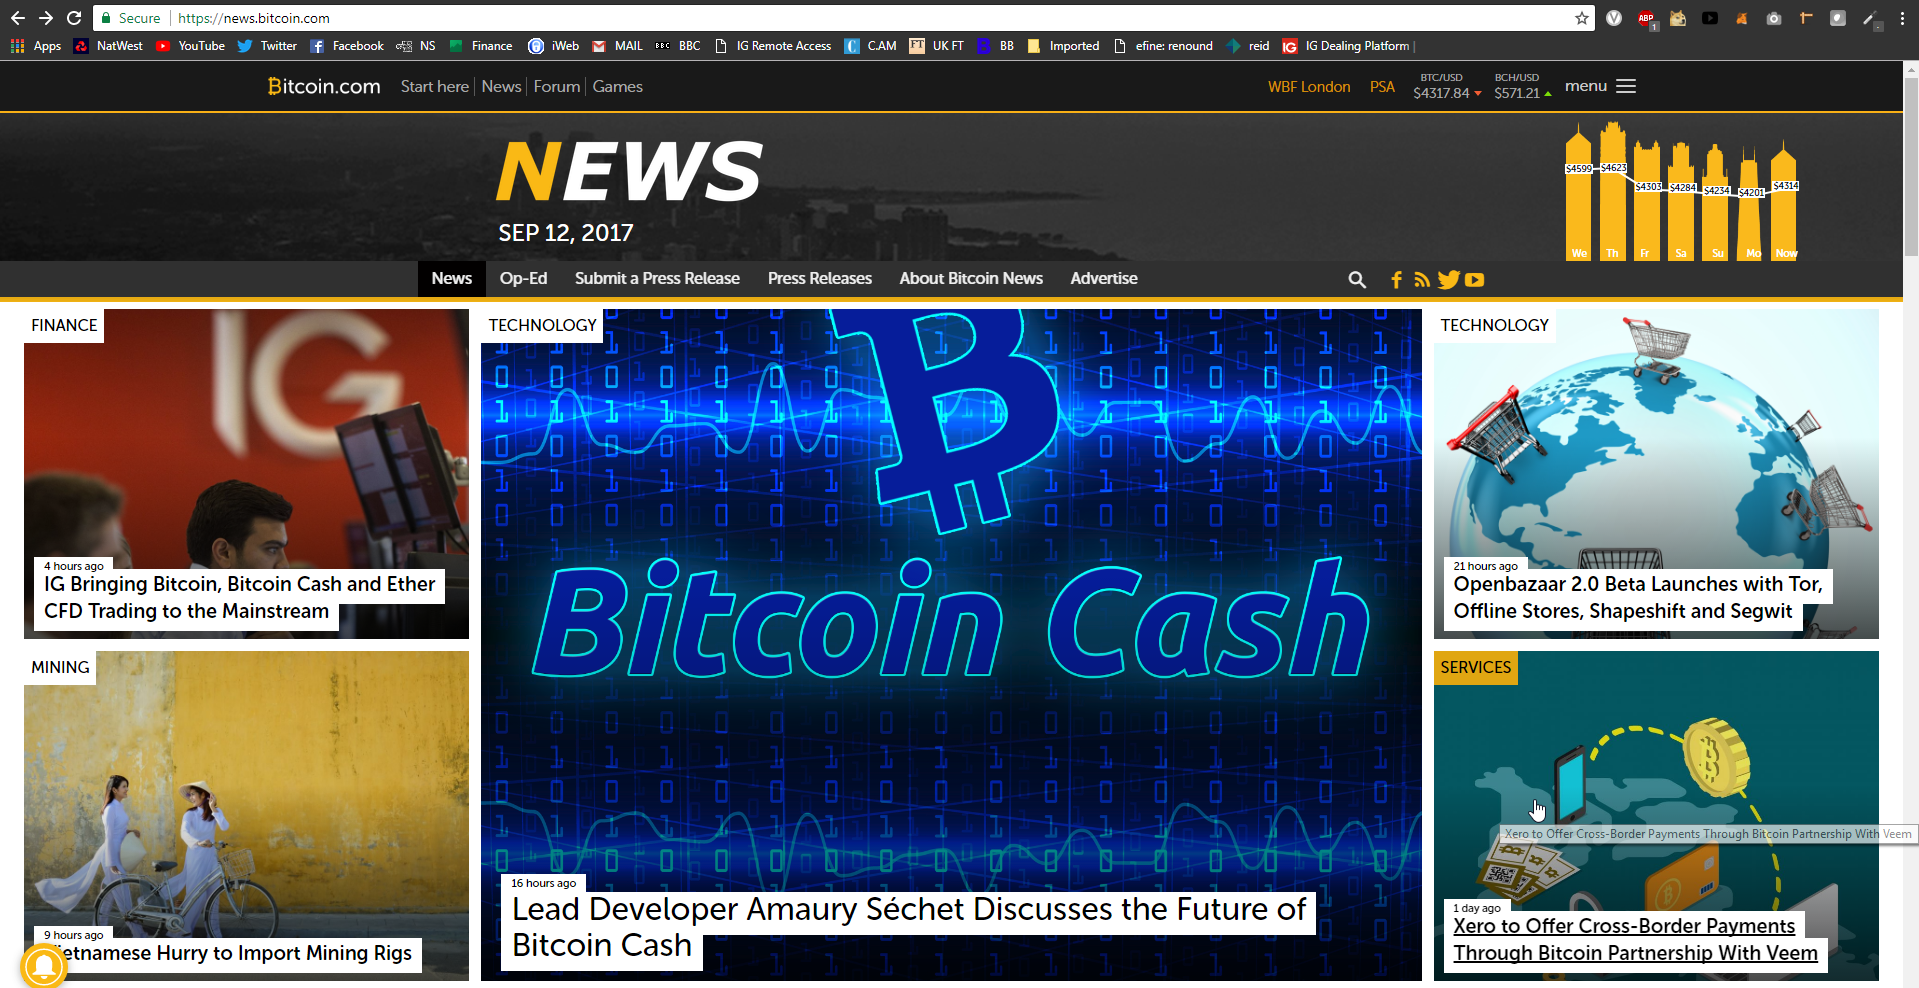 2017-09-12 10_51_23-News - Bitcoin News.png